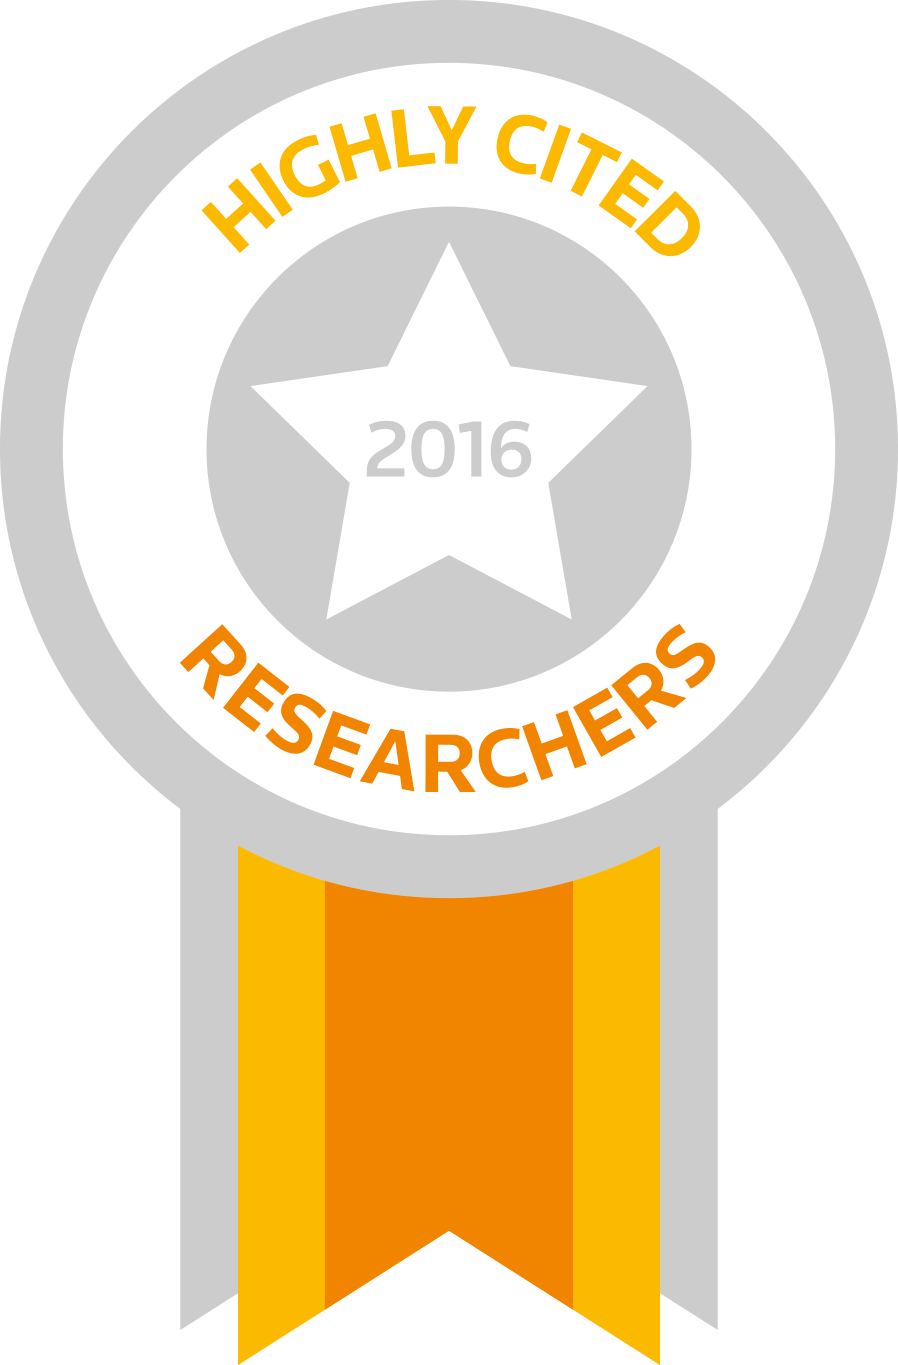 Clarivate Analytics Highly Cited award logo